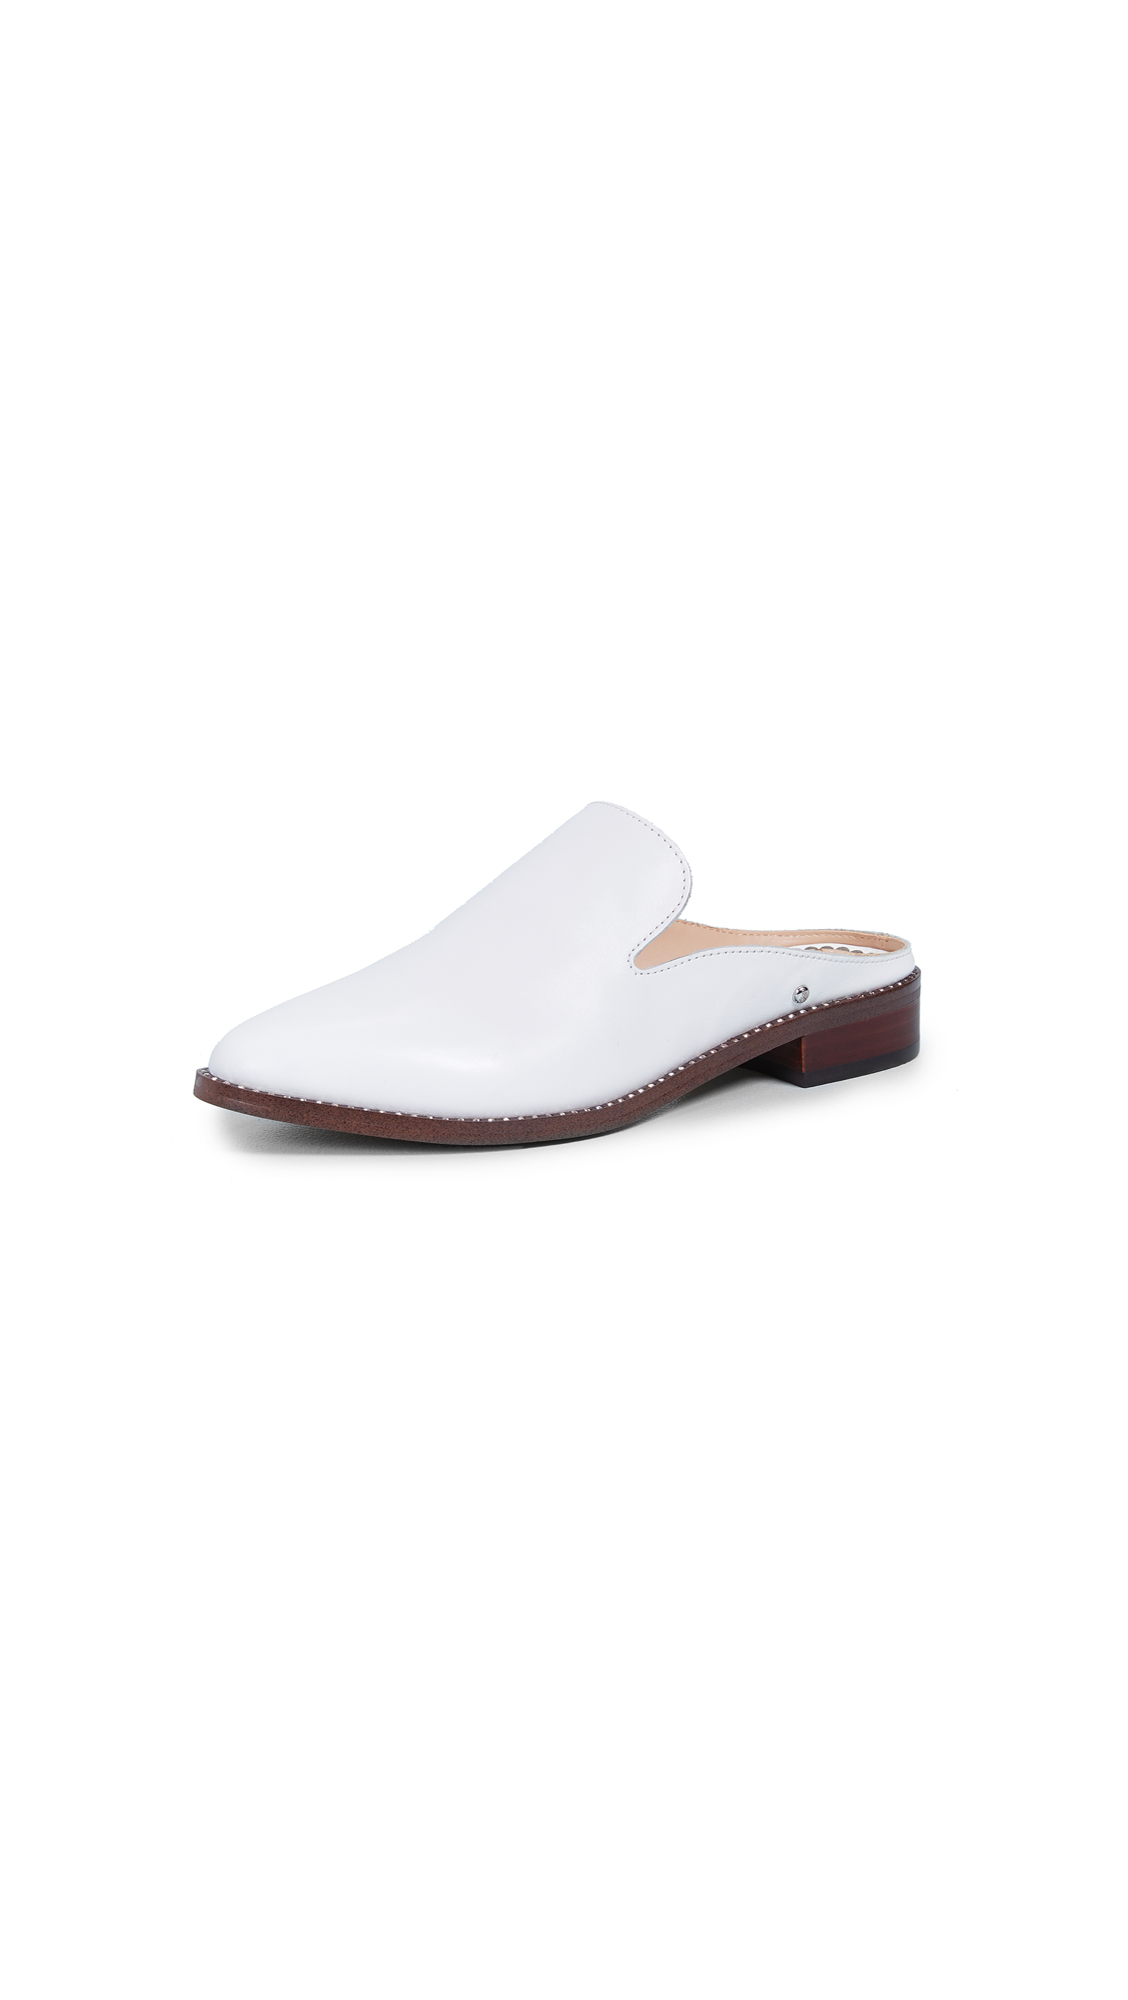 Sam Edelman Laddie Mules - Bright White